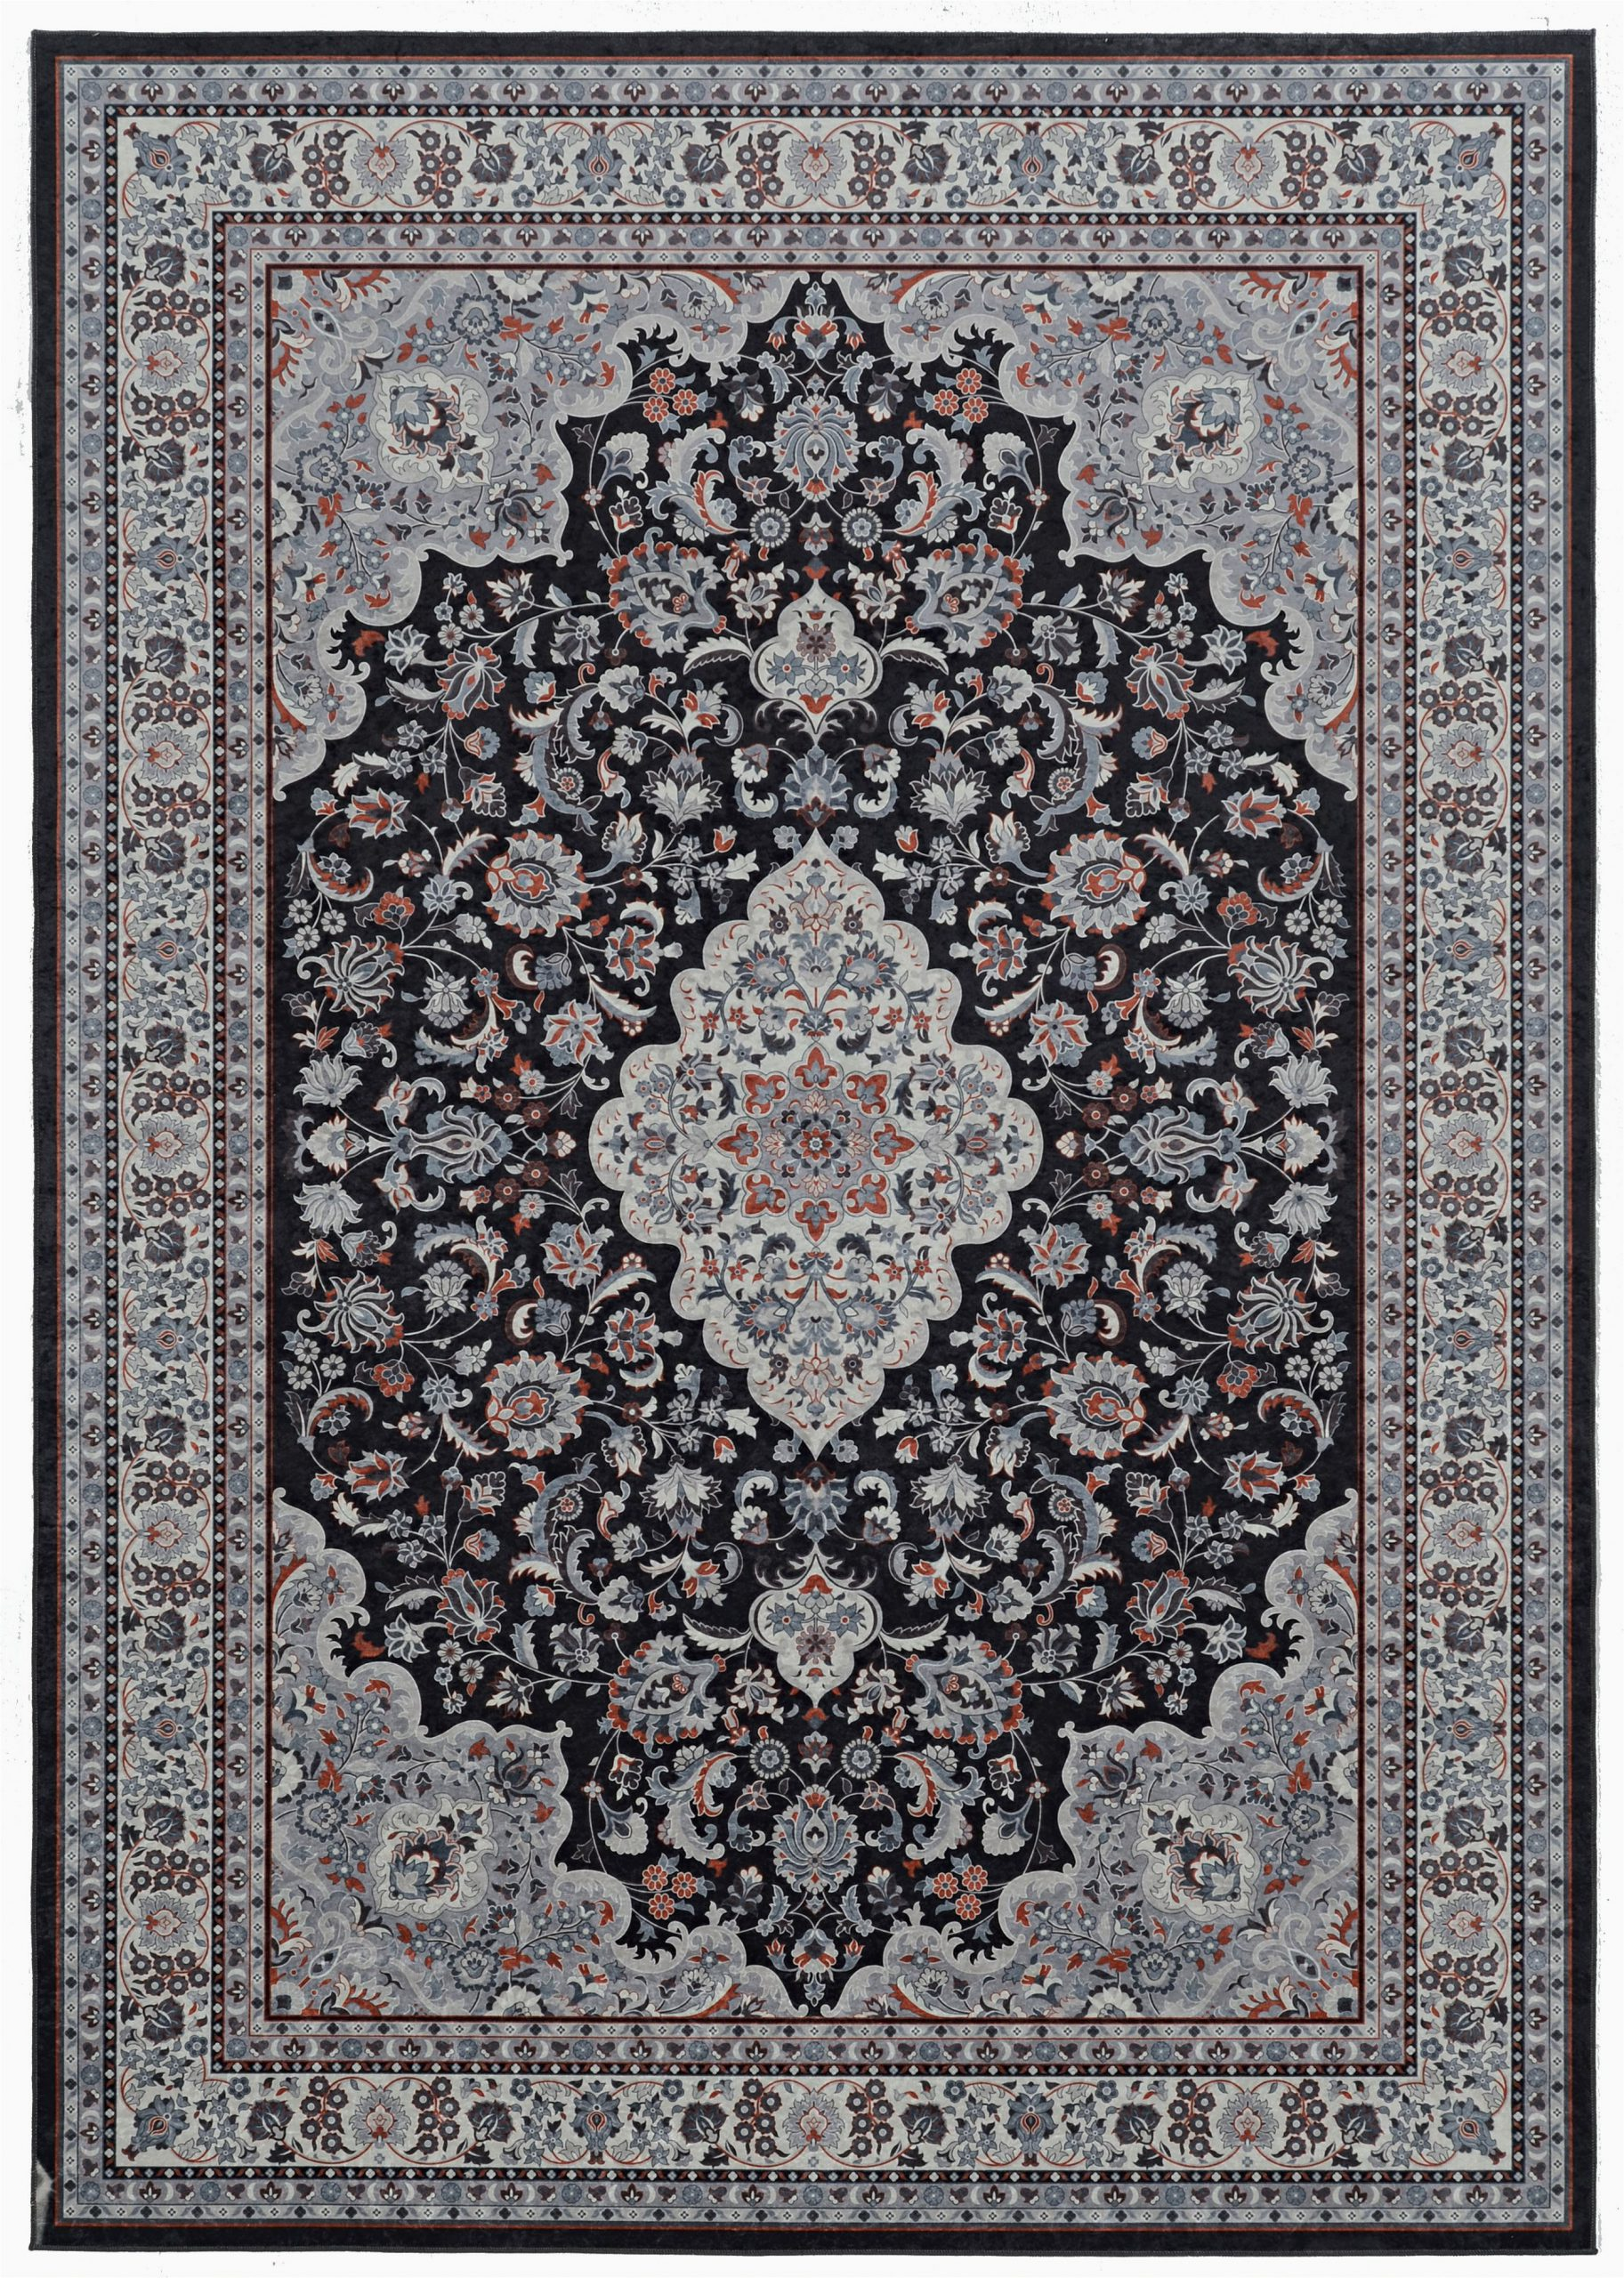 Mainstays Titan area Rug Black Emerald Collection Black Cream Rug Multiple Sizes Walmart